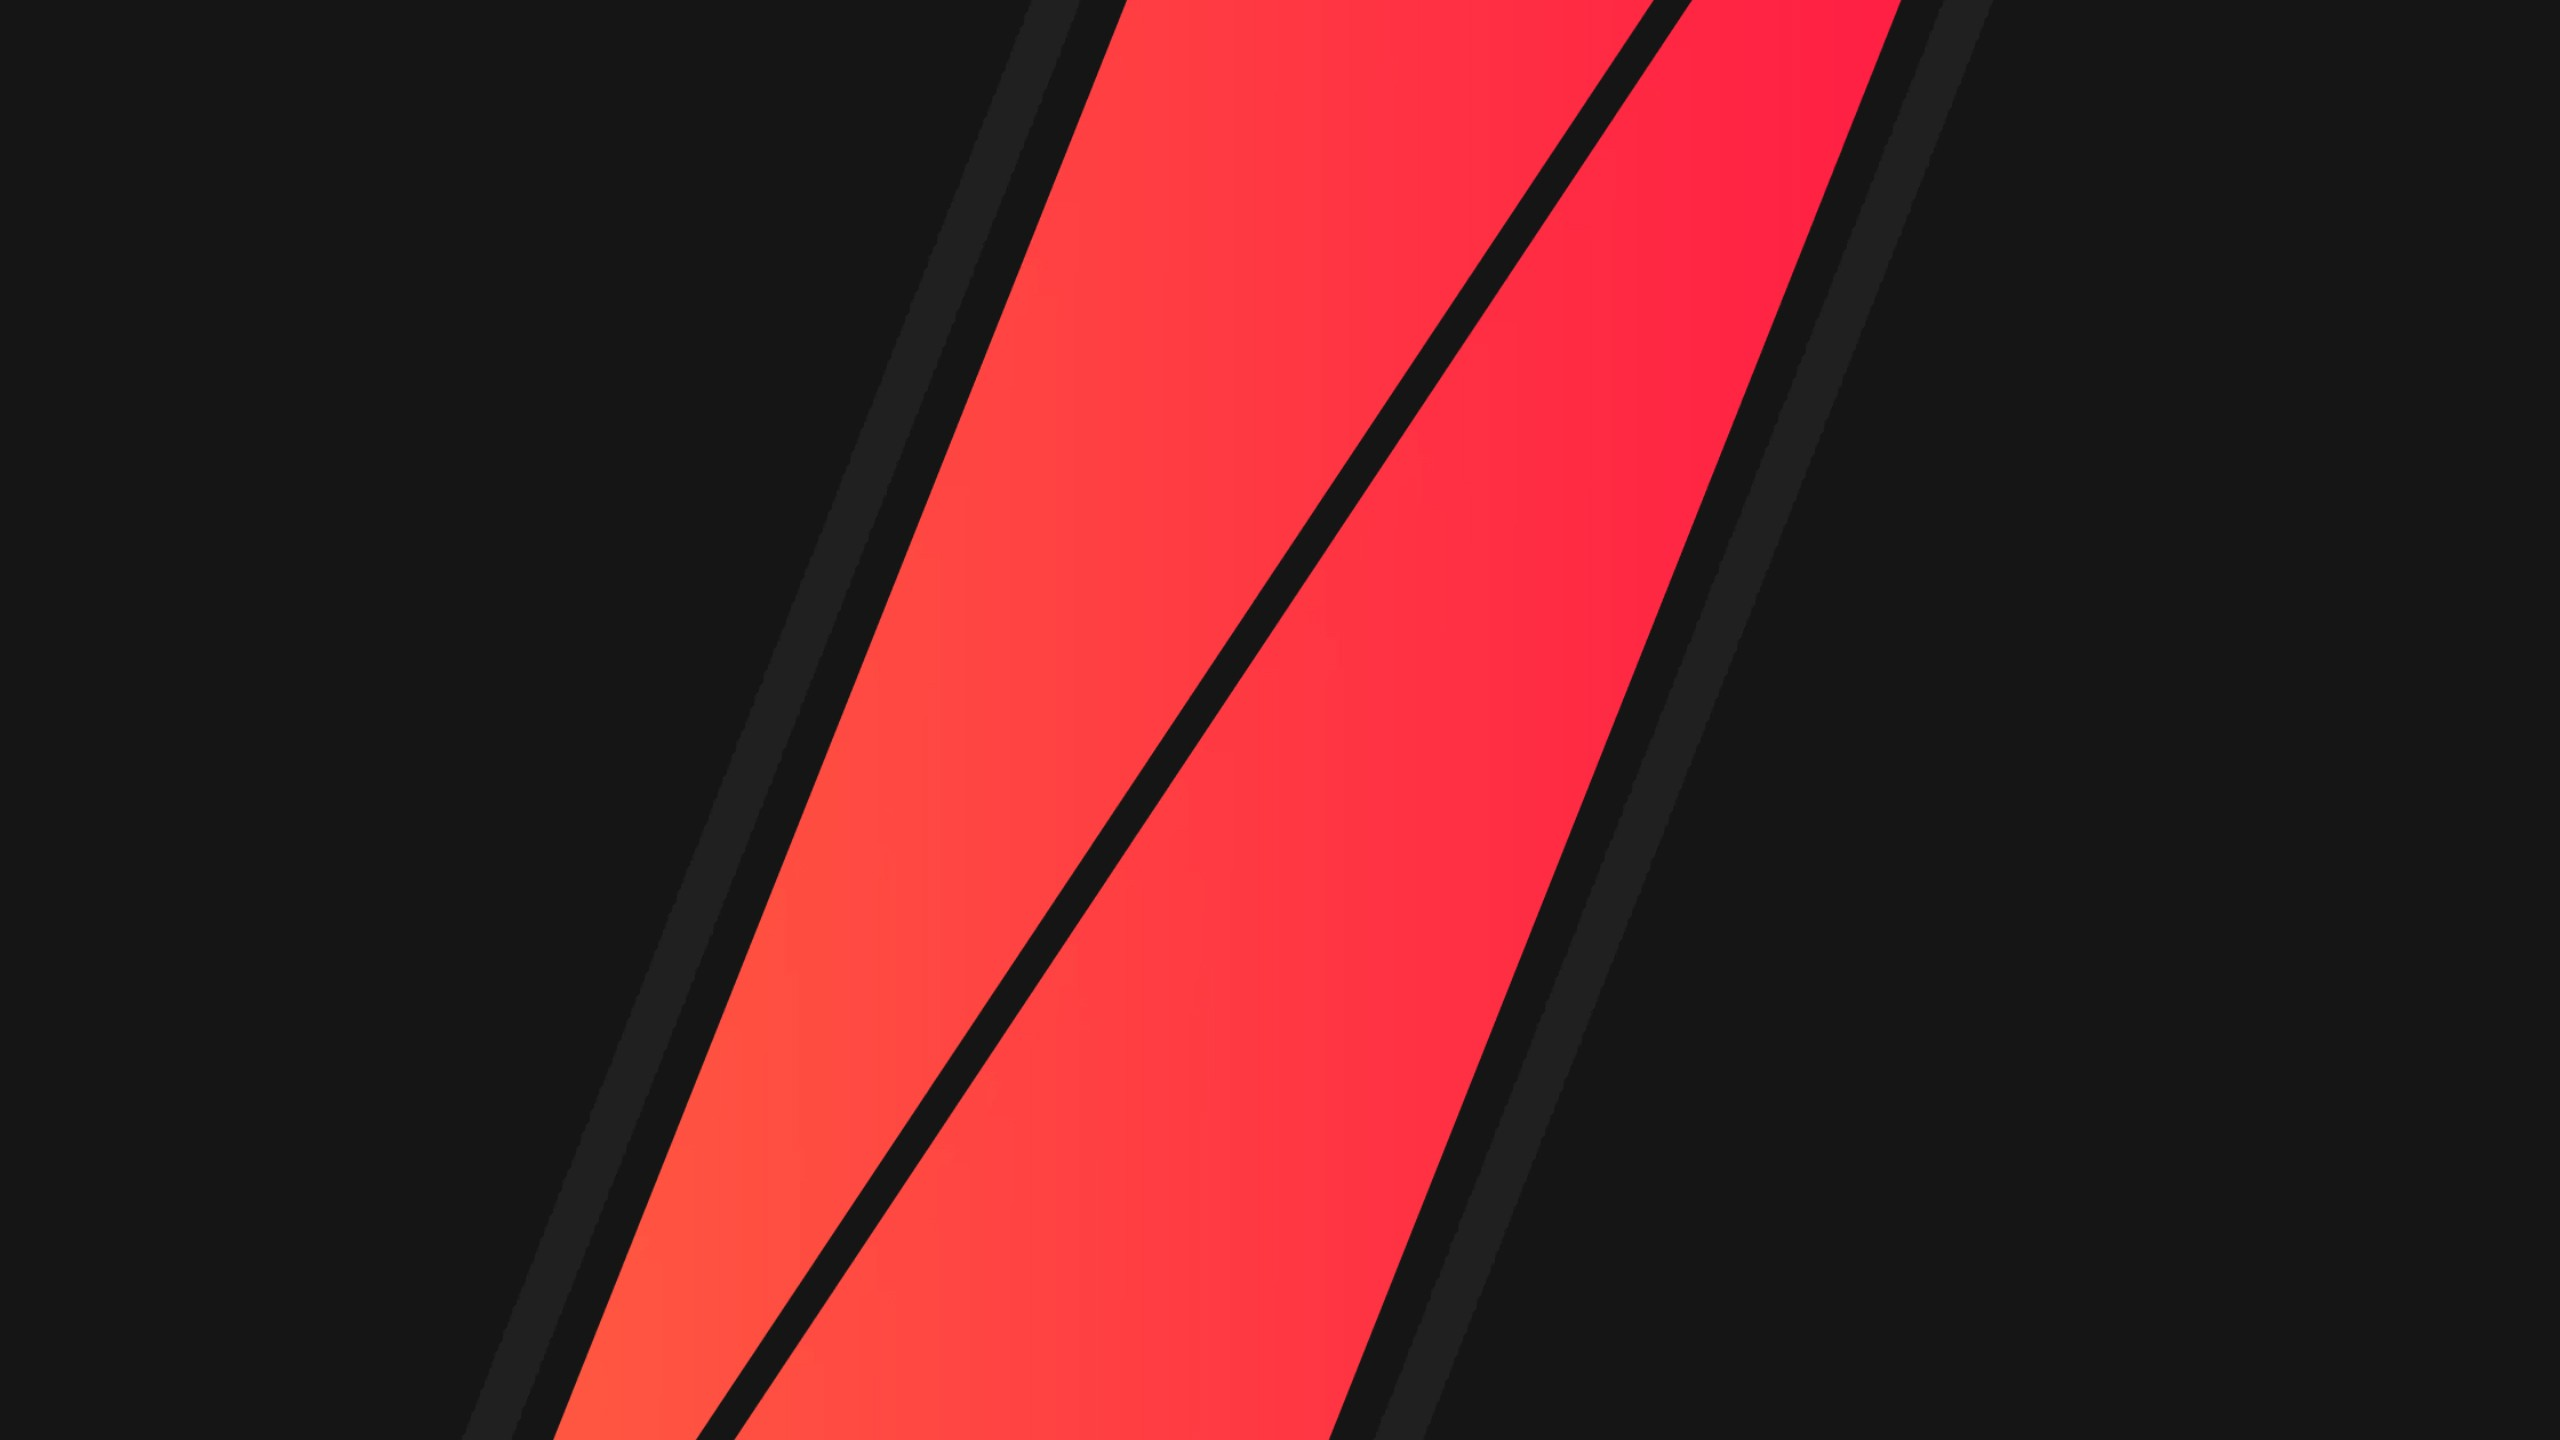 black red minimalism hd artist 4k wallpapers images